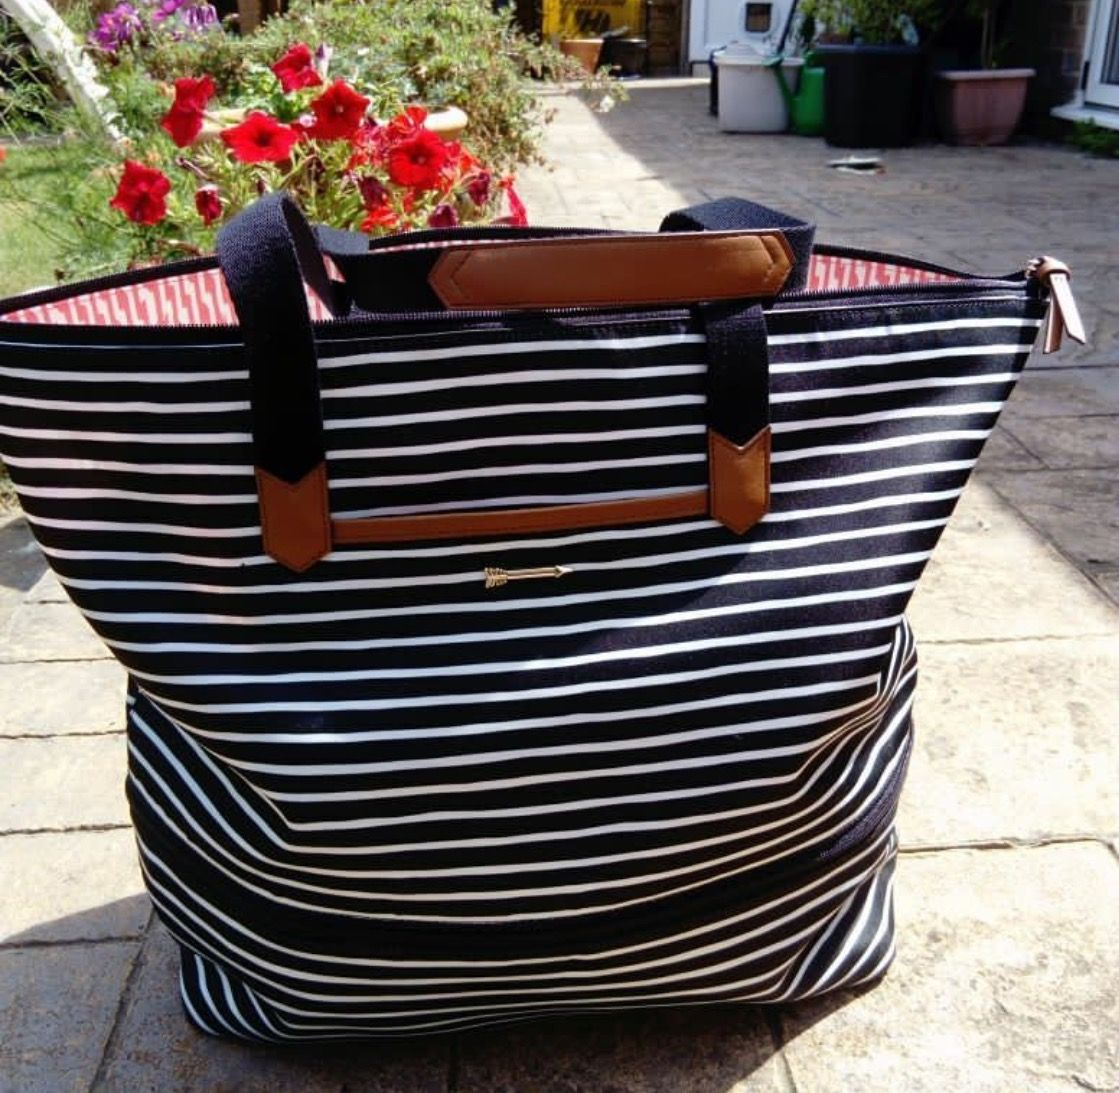 a2d13c812 Daytripper- black/cream stripe. Our popular black and cream stripe now  comes in our everyday Daytripper tote! Whether using as a stylish commuter  bag or a ...